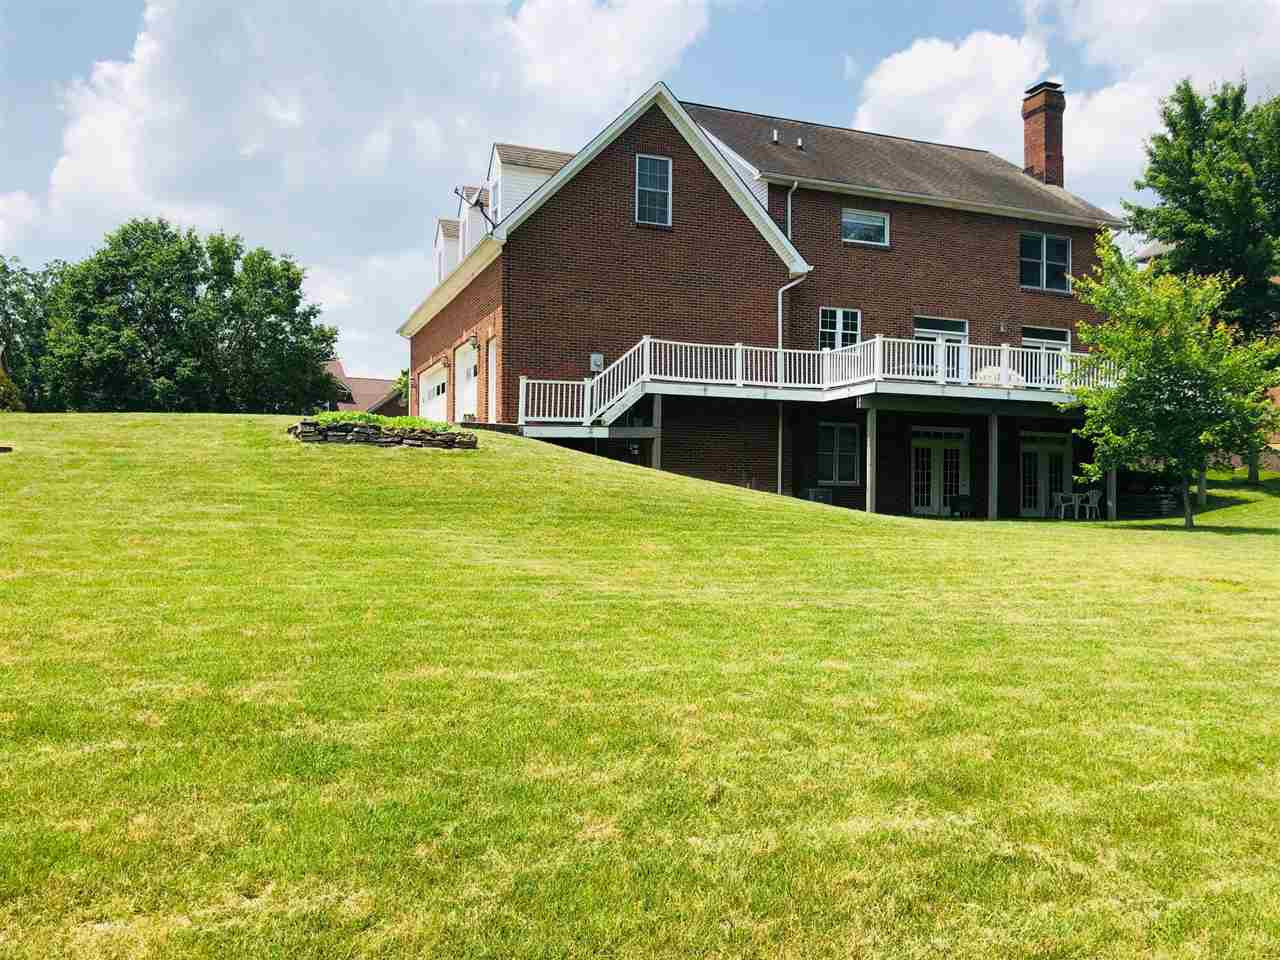 Photo 3 for 3289 Kruer Ct Edgewood, KY 41017